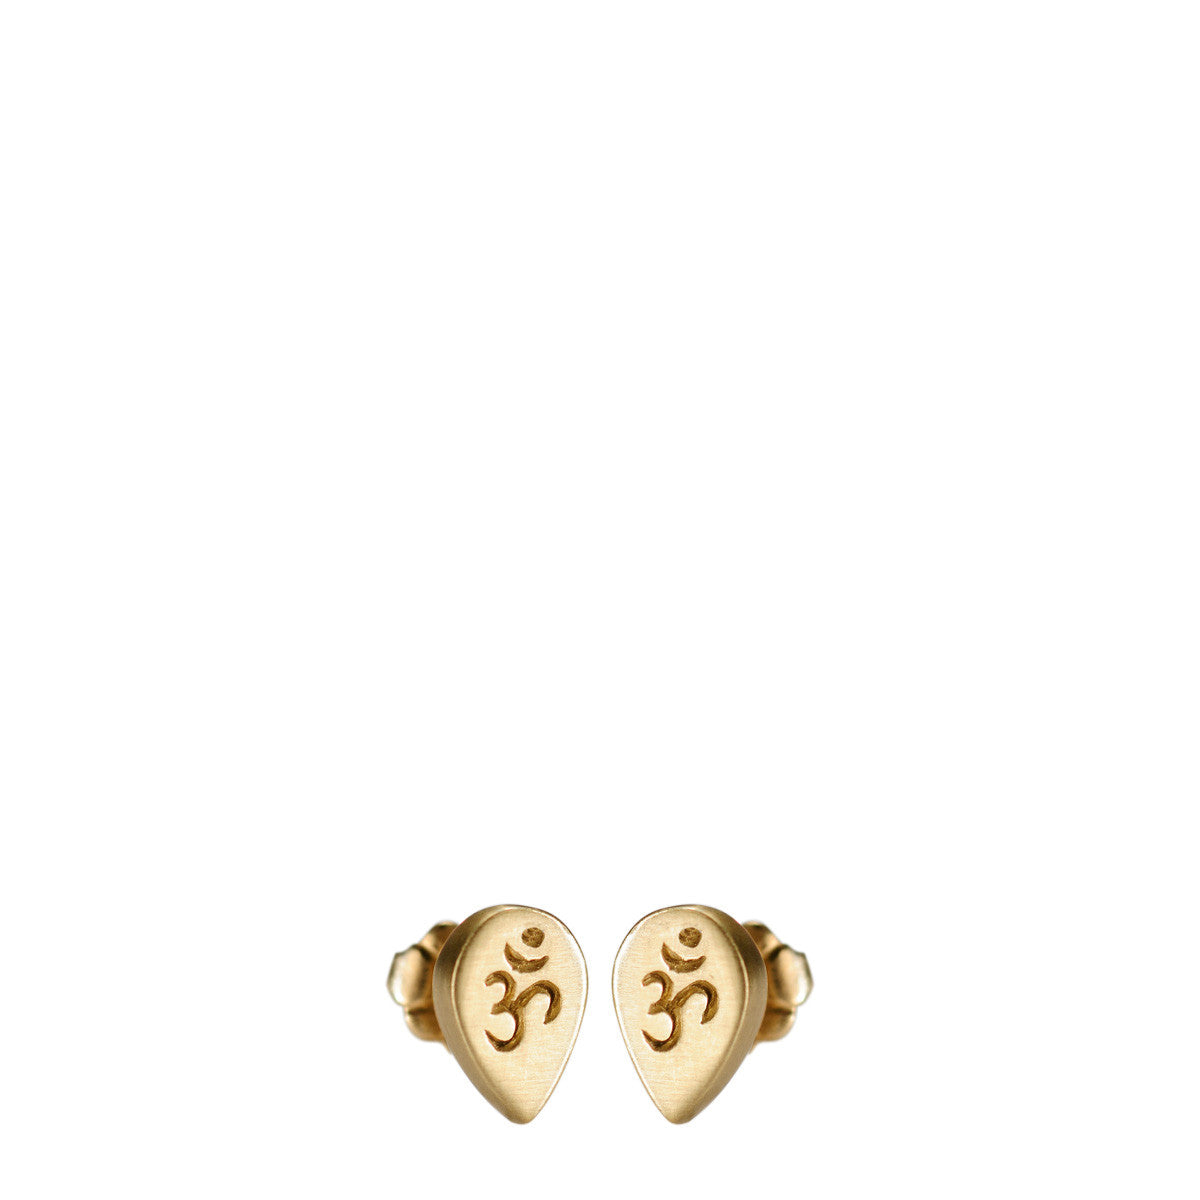 10K Gold Teardrop Om Stud Earrings